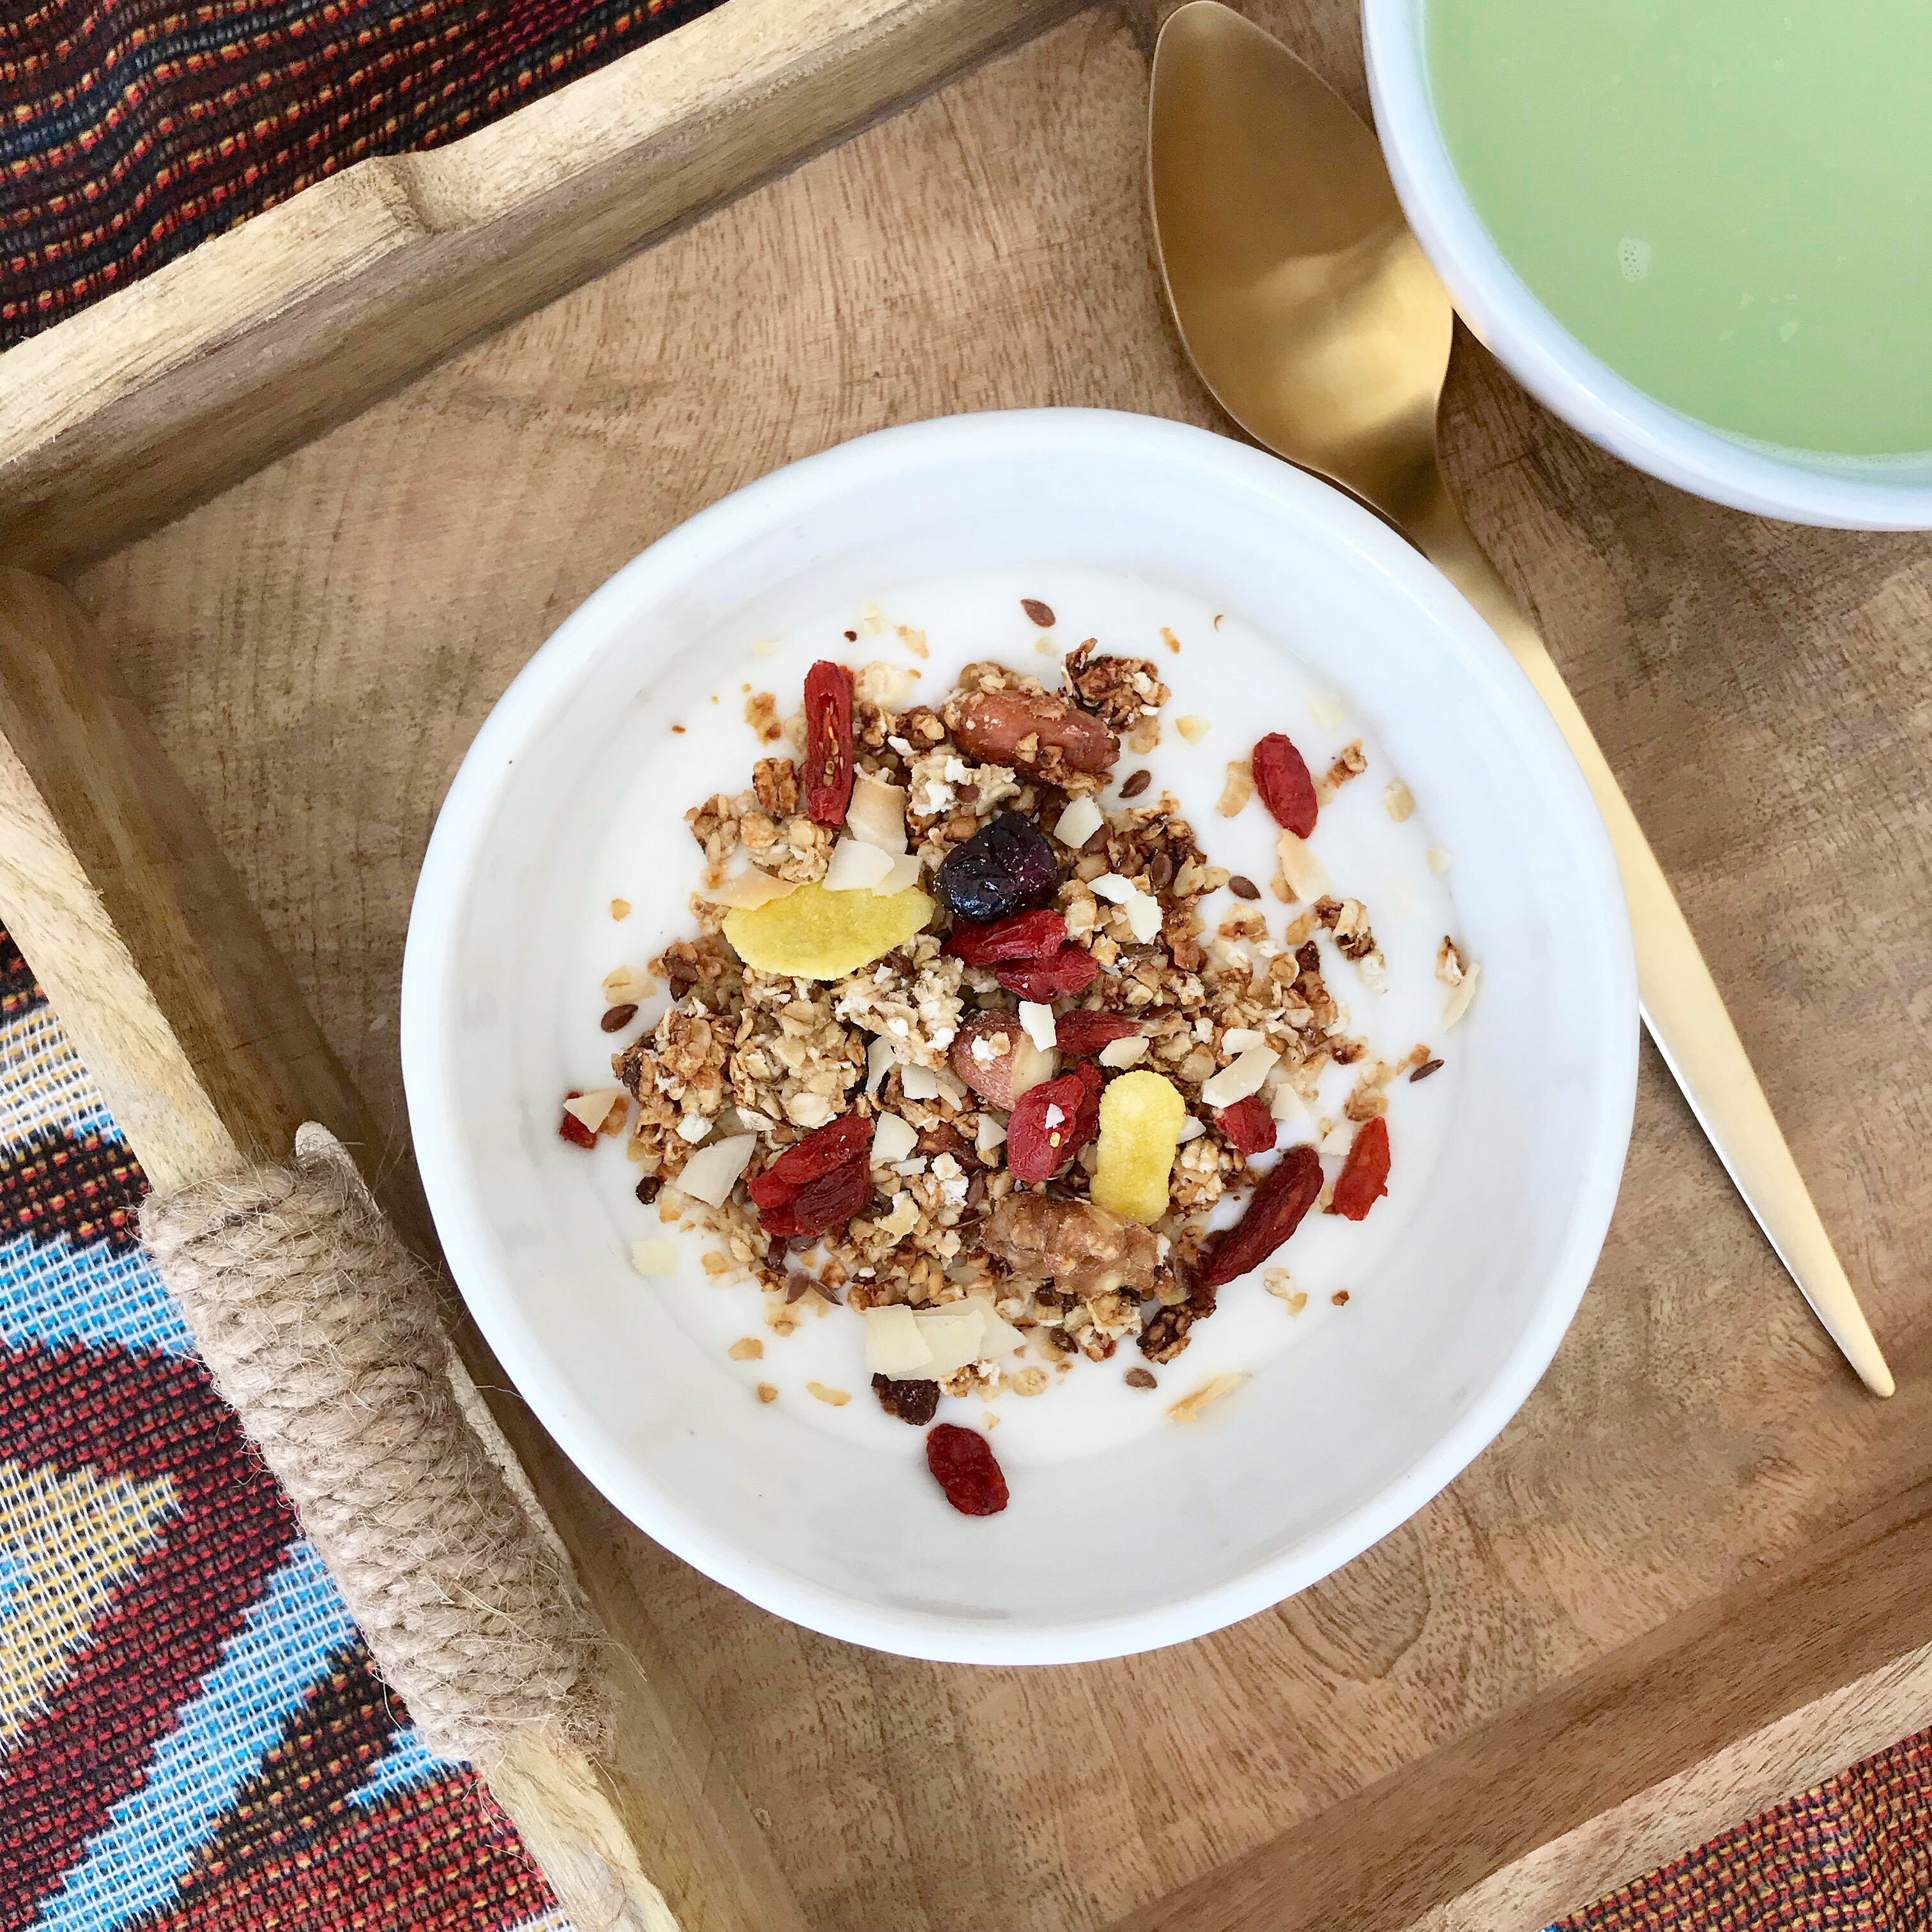 Homemade vegan granola i love homemade vegan granola its packed with nutrients and theres so many variations depending on what you like and how nutritious you want it ccuart Image collections